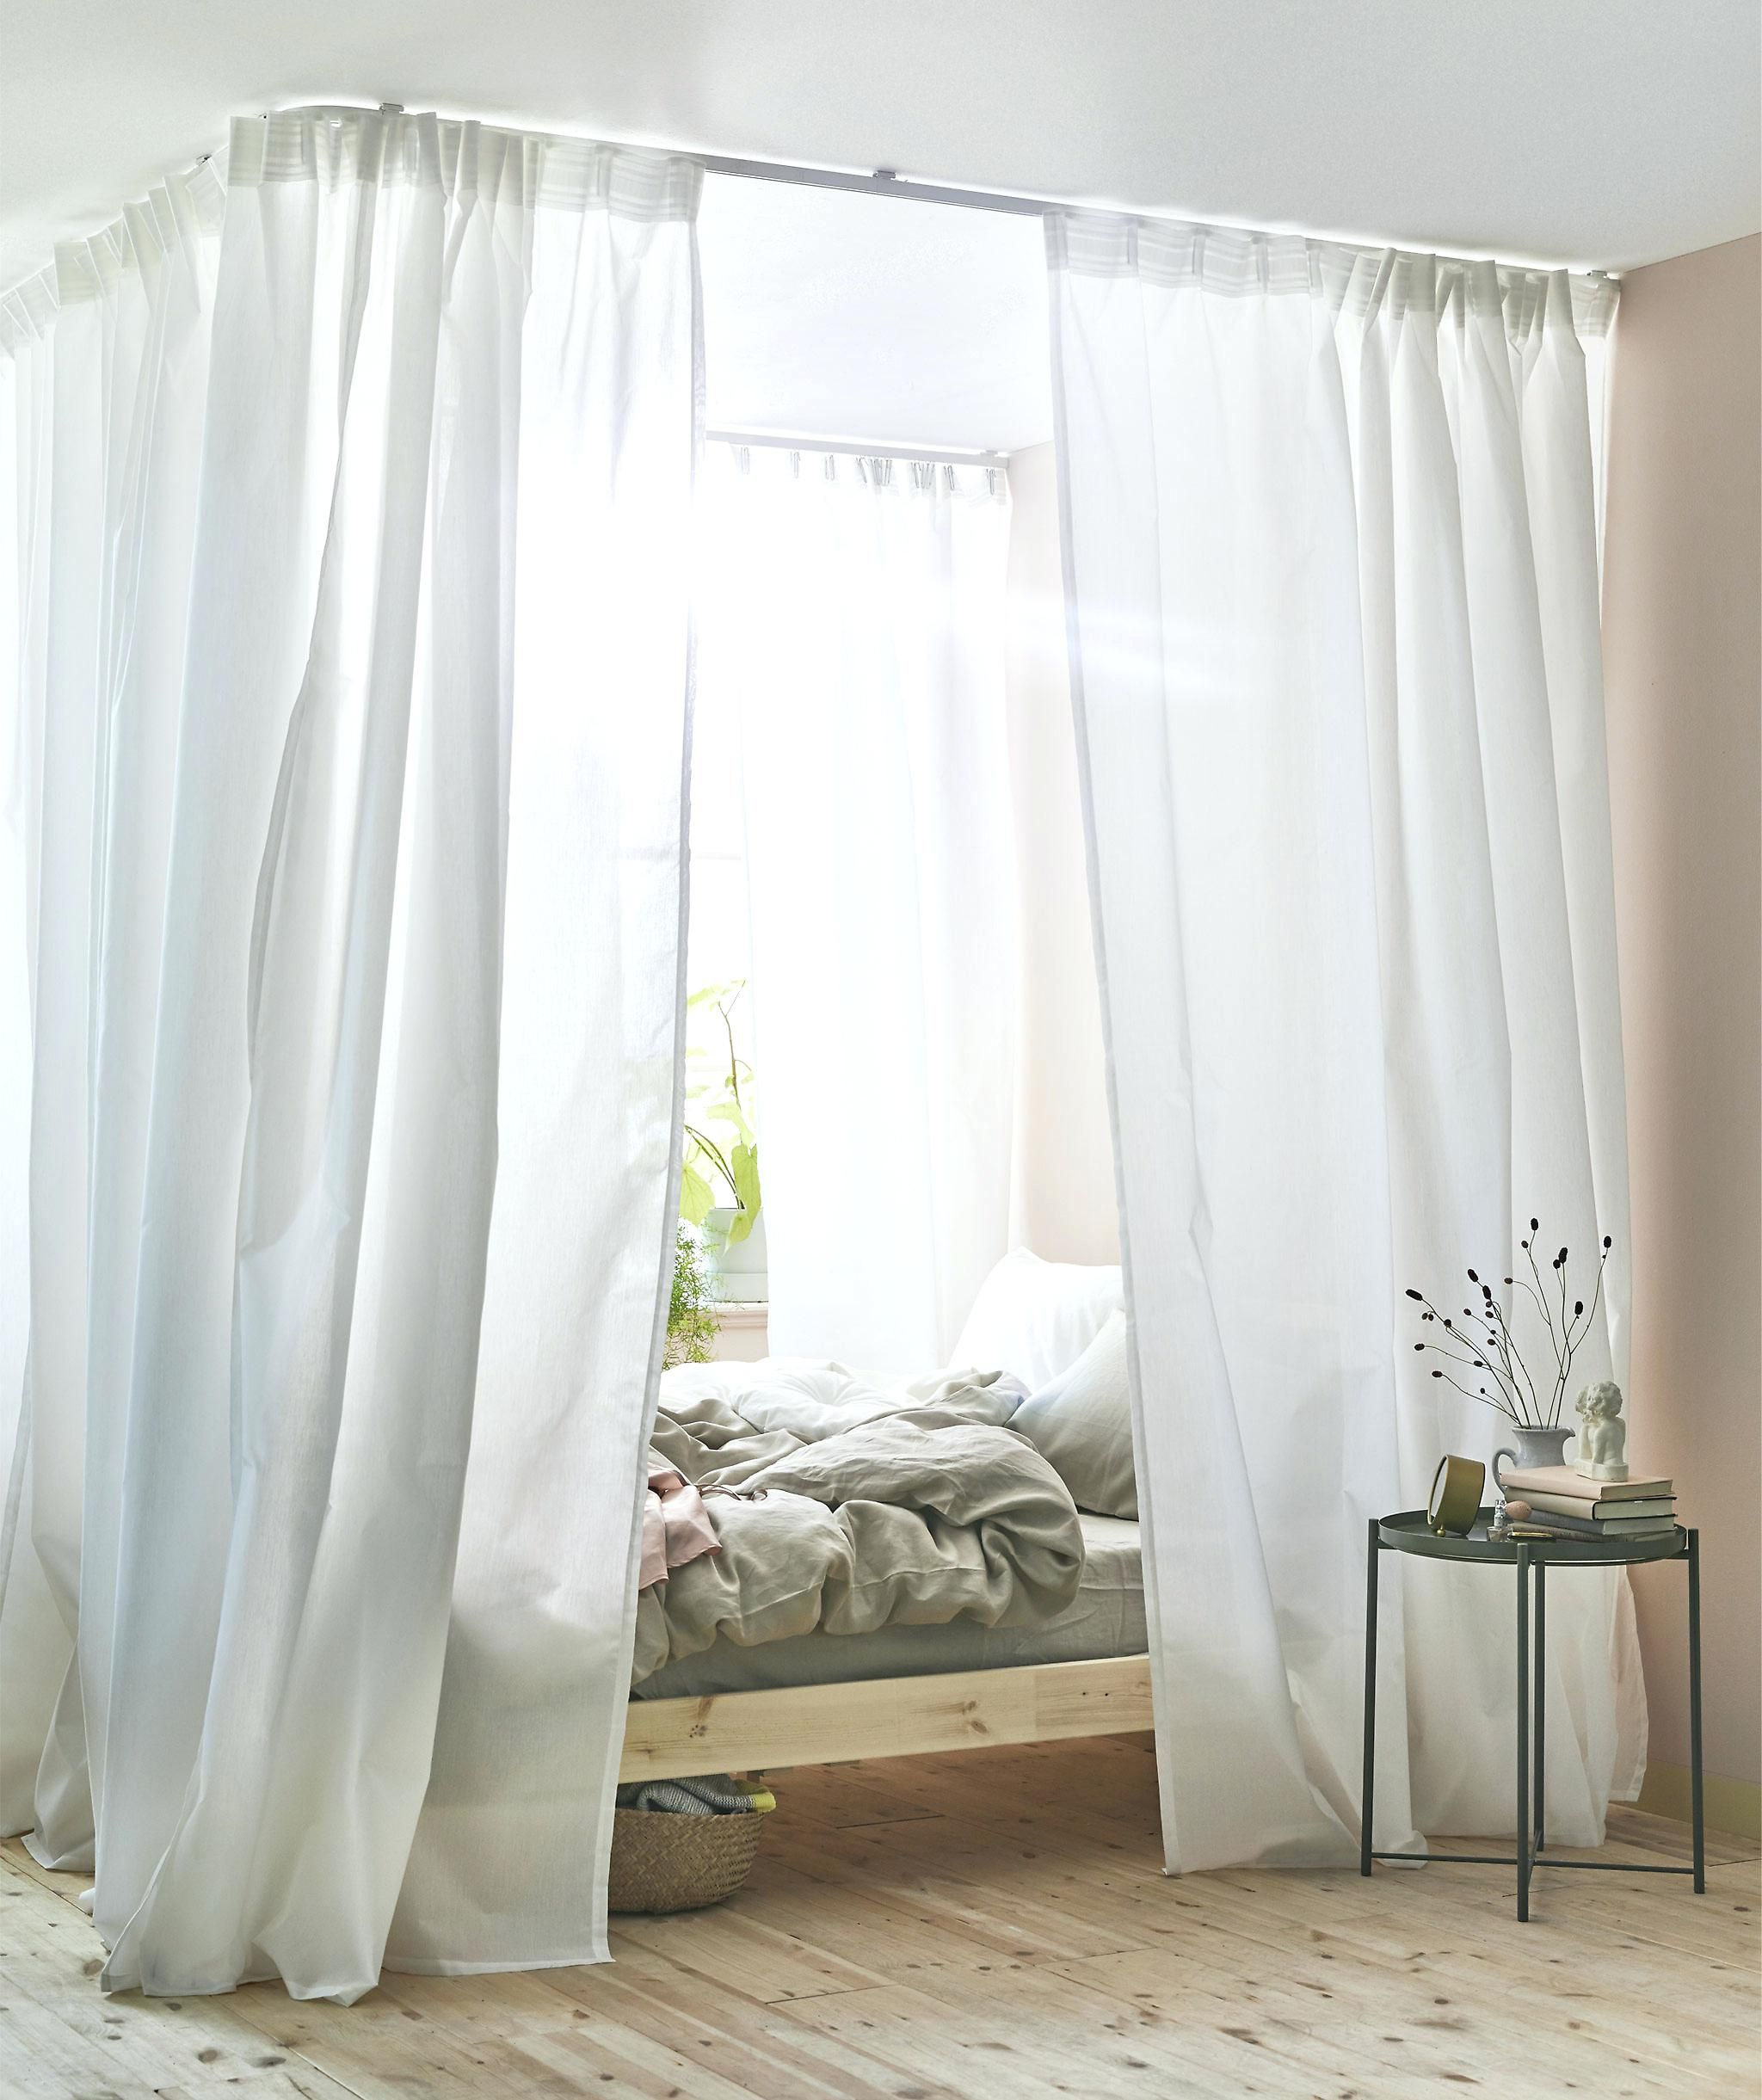 8 Hacks We Discovered Hiding Deep In Ikea S Website Diy Canopy Bed Canopy Bed Diy Curtains Around Bed Canopy Bed Curtains